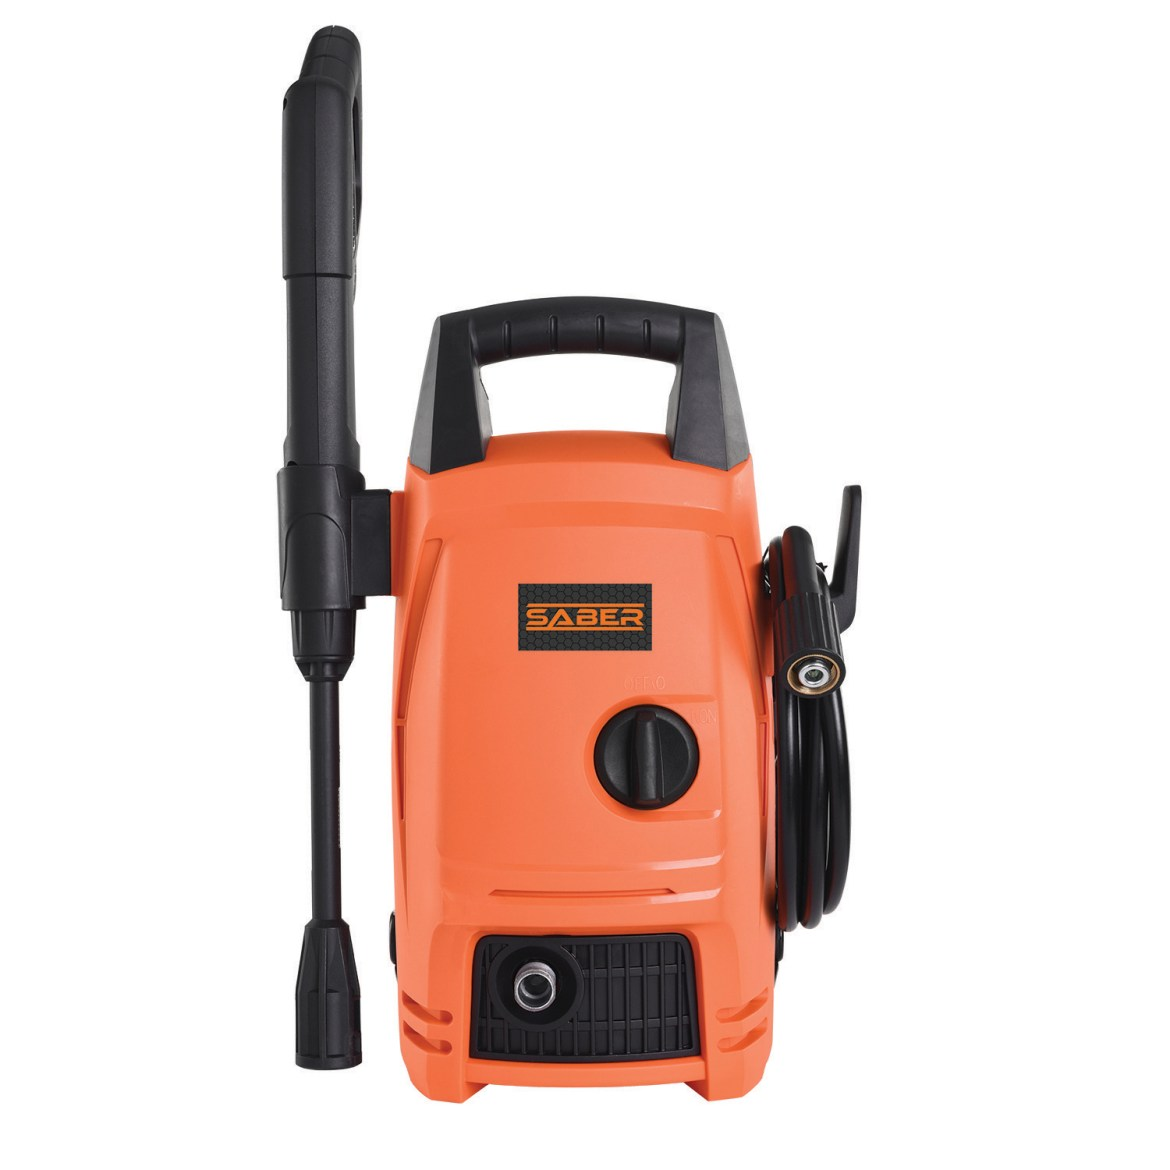 You can save £30 on a Saber 1400W pressure washer at The Range right now